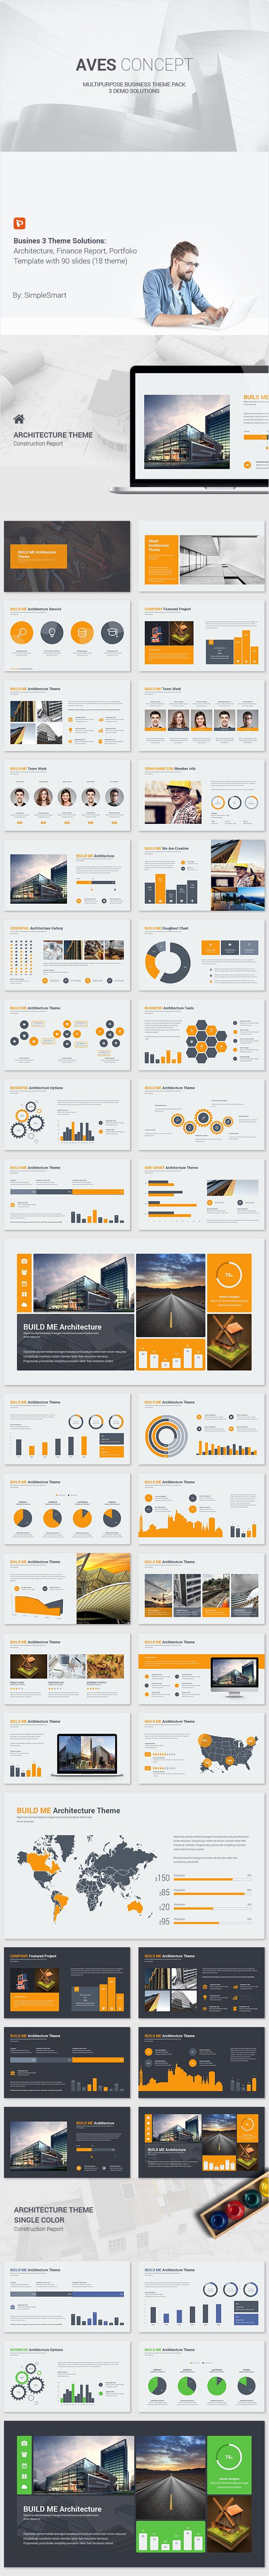 Aves Business Theme - 3